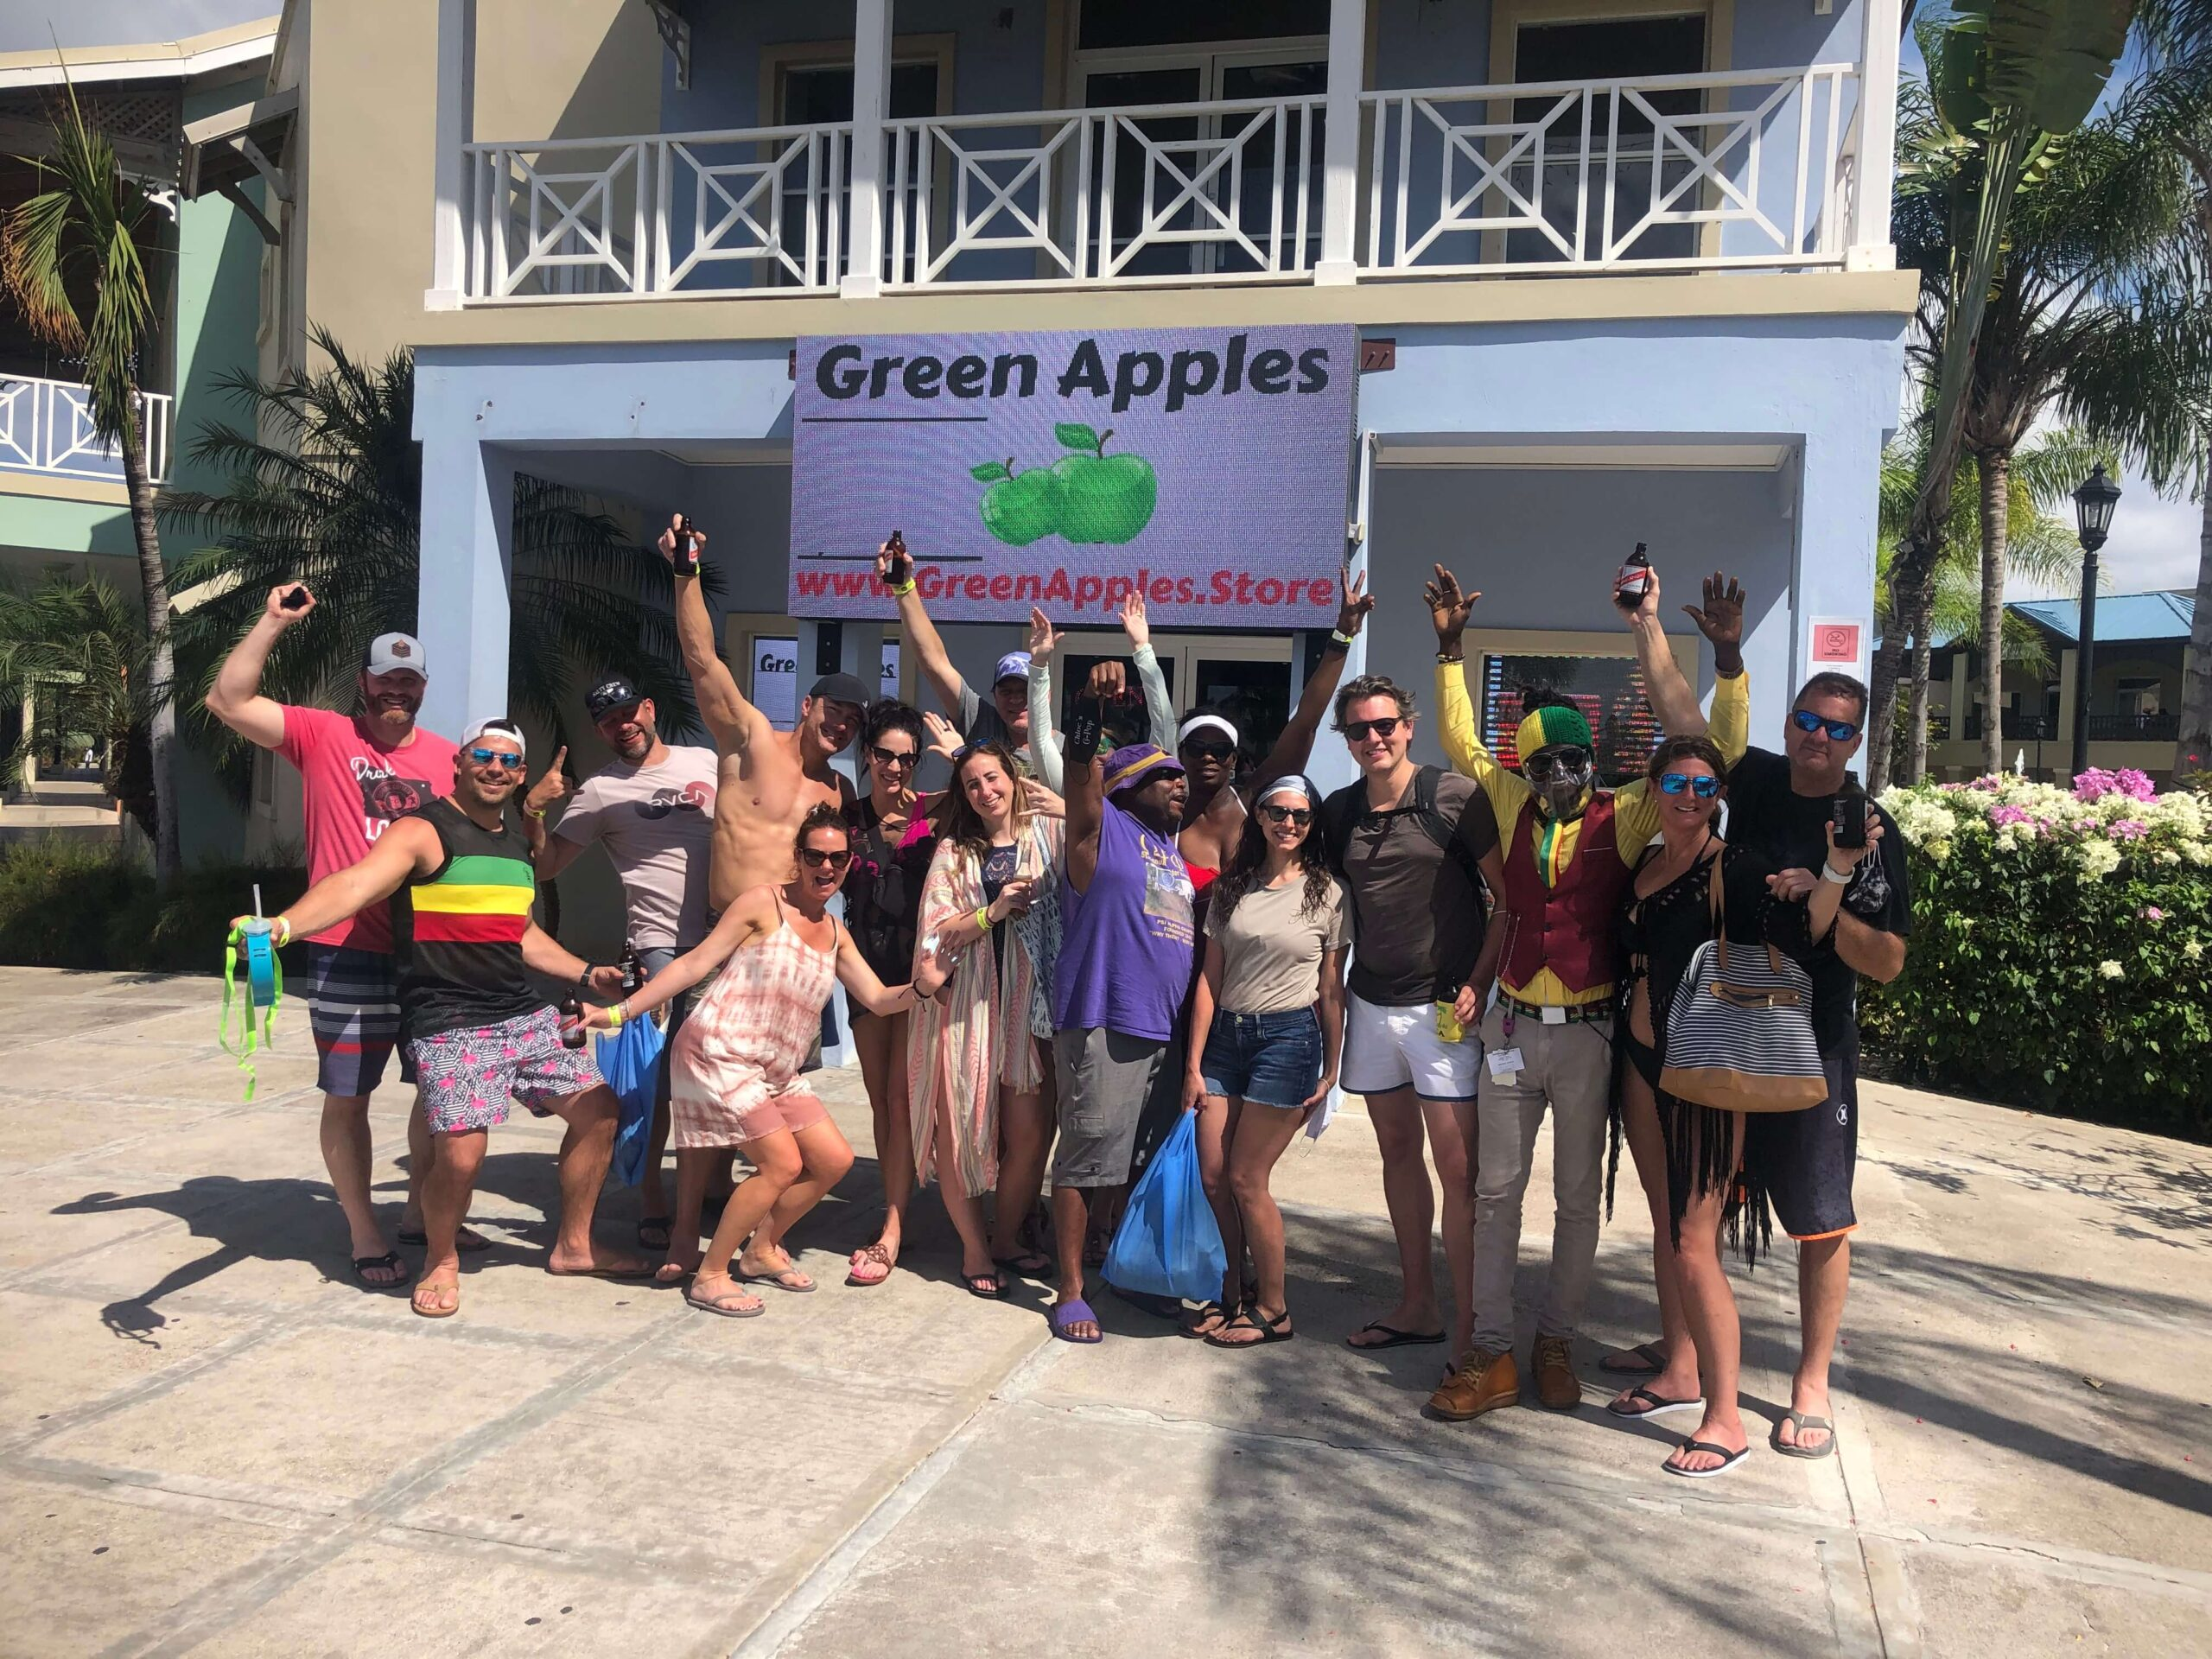 Green Apples Store